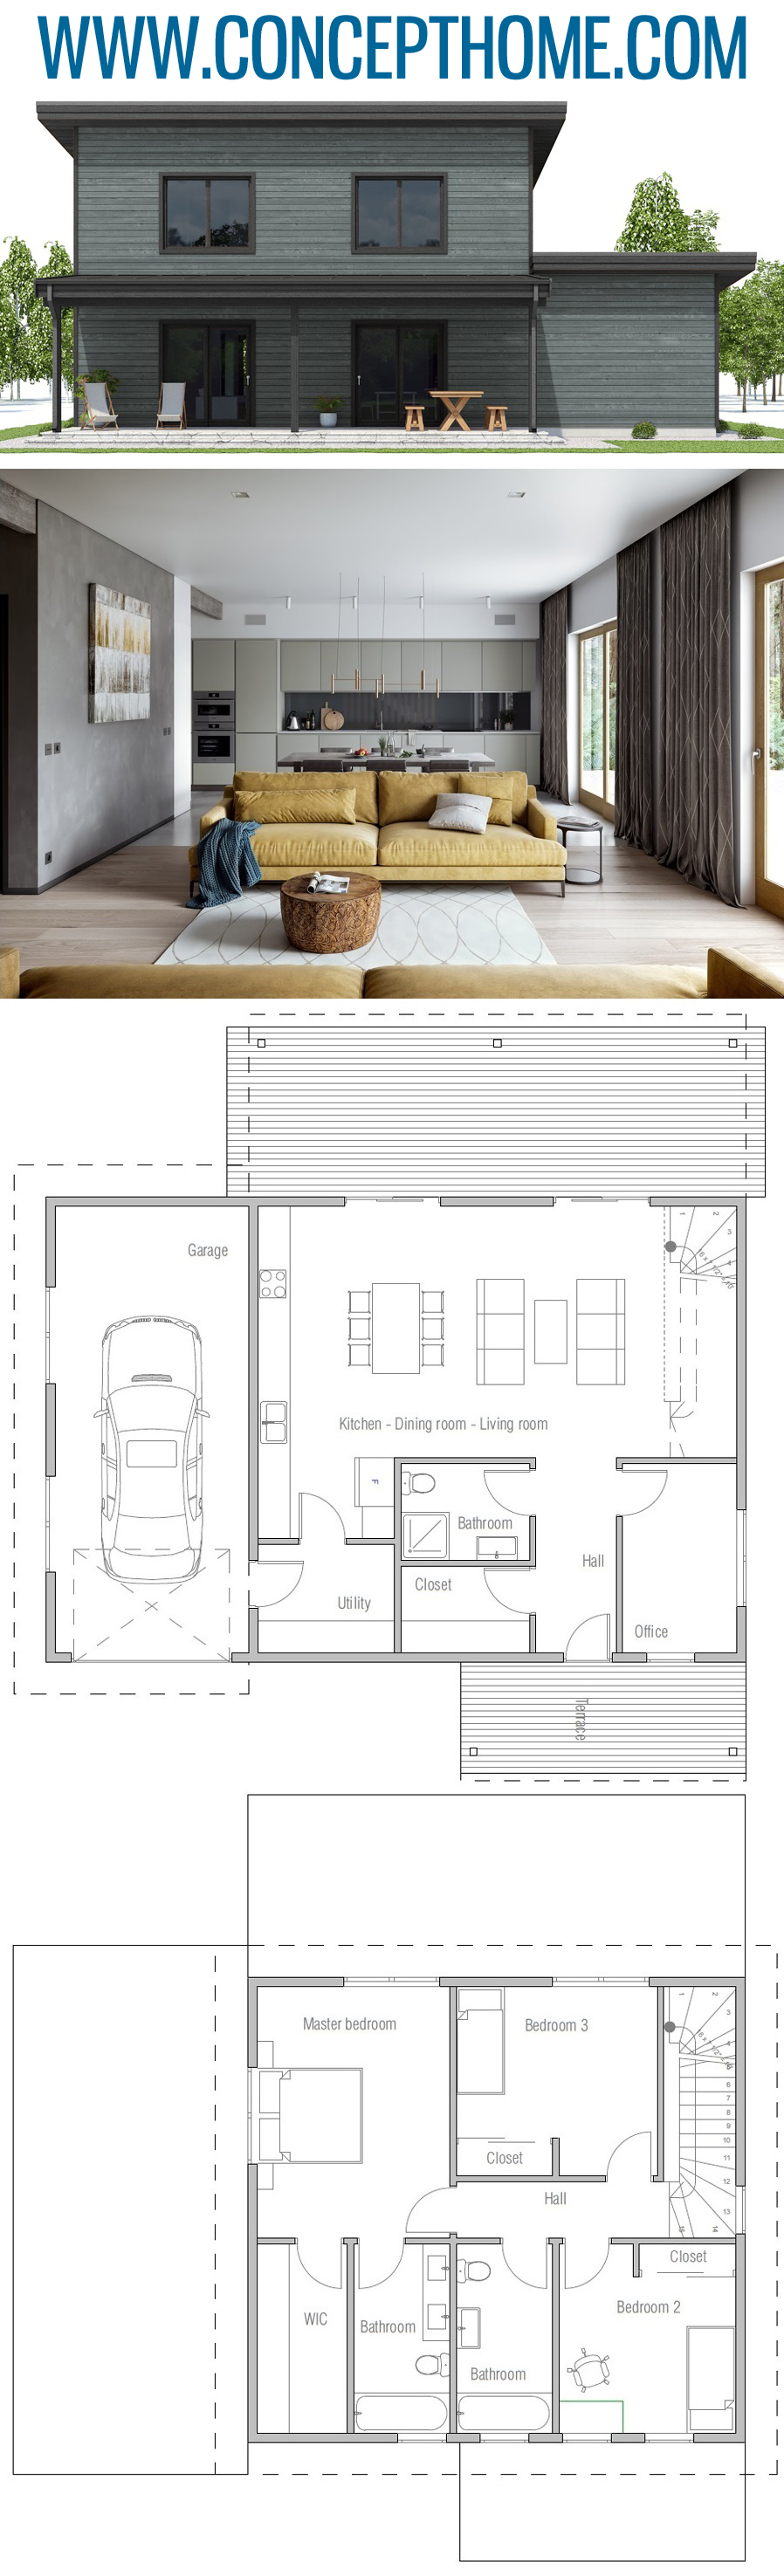 Small House Plan Ch499 House Plans Small House Plans Small House